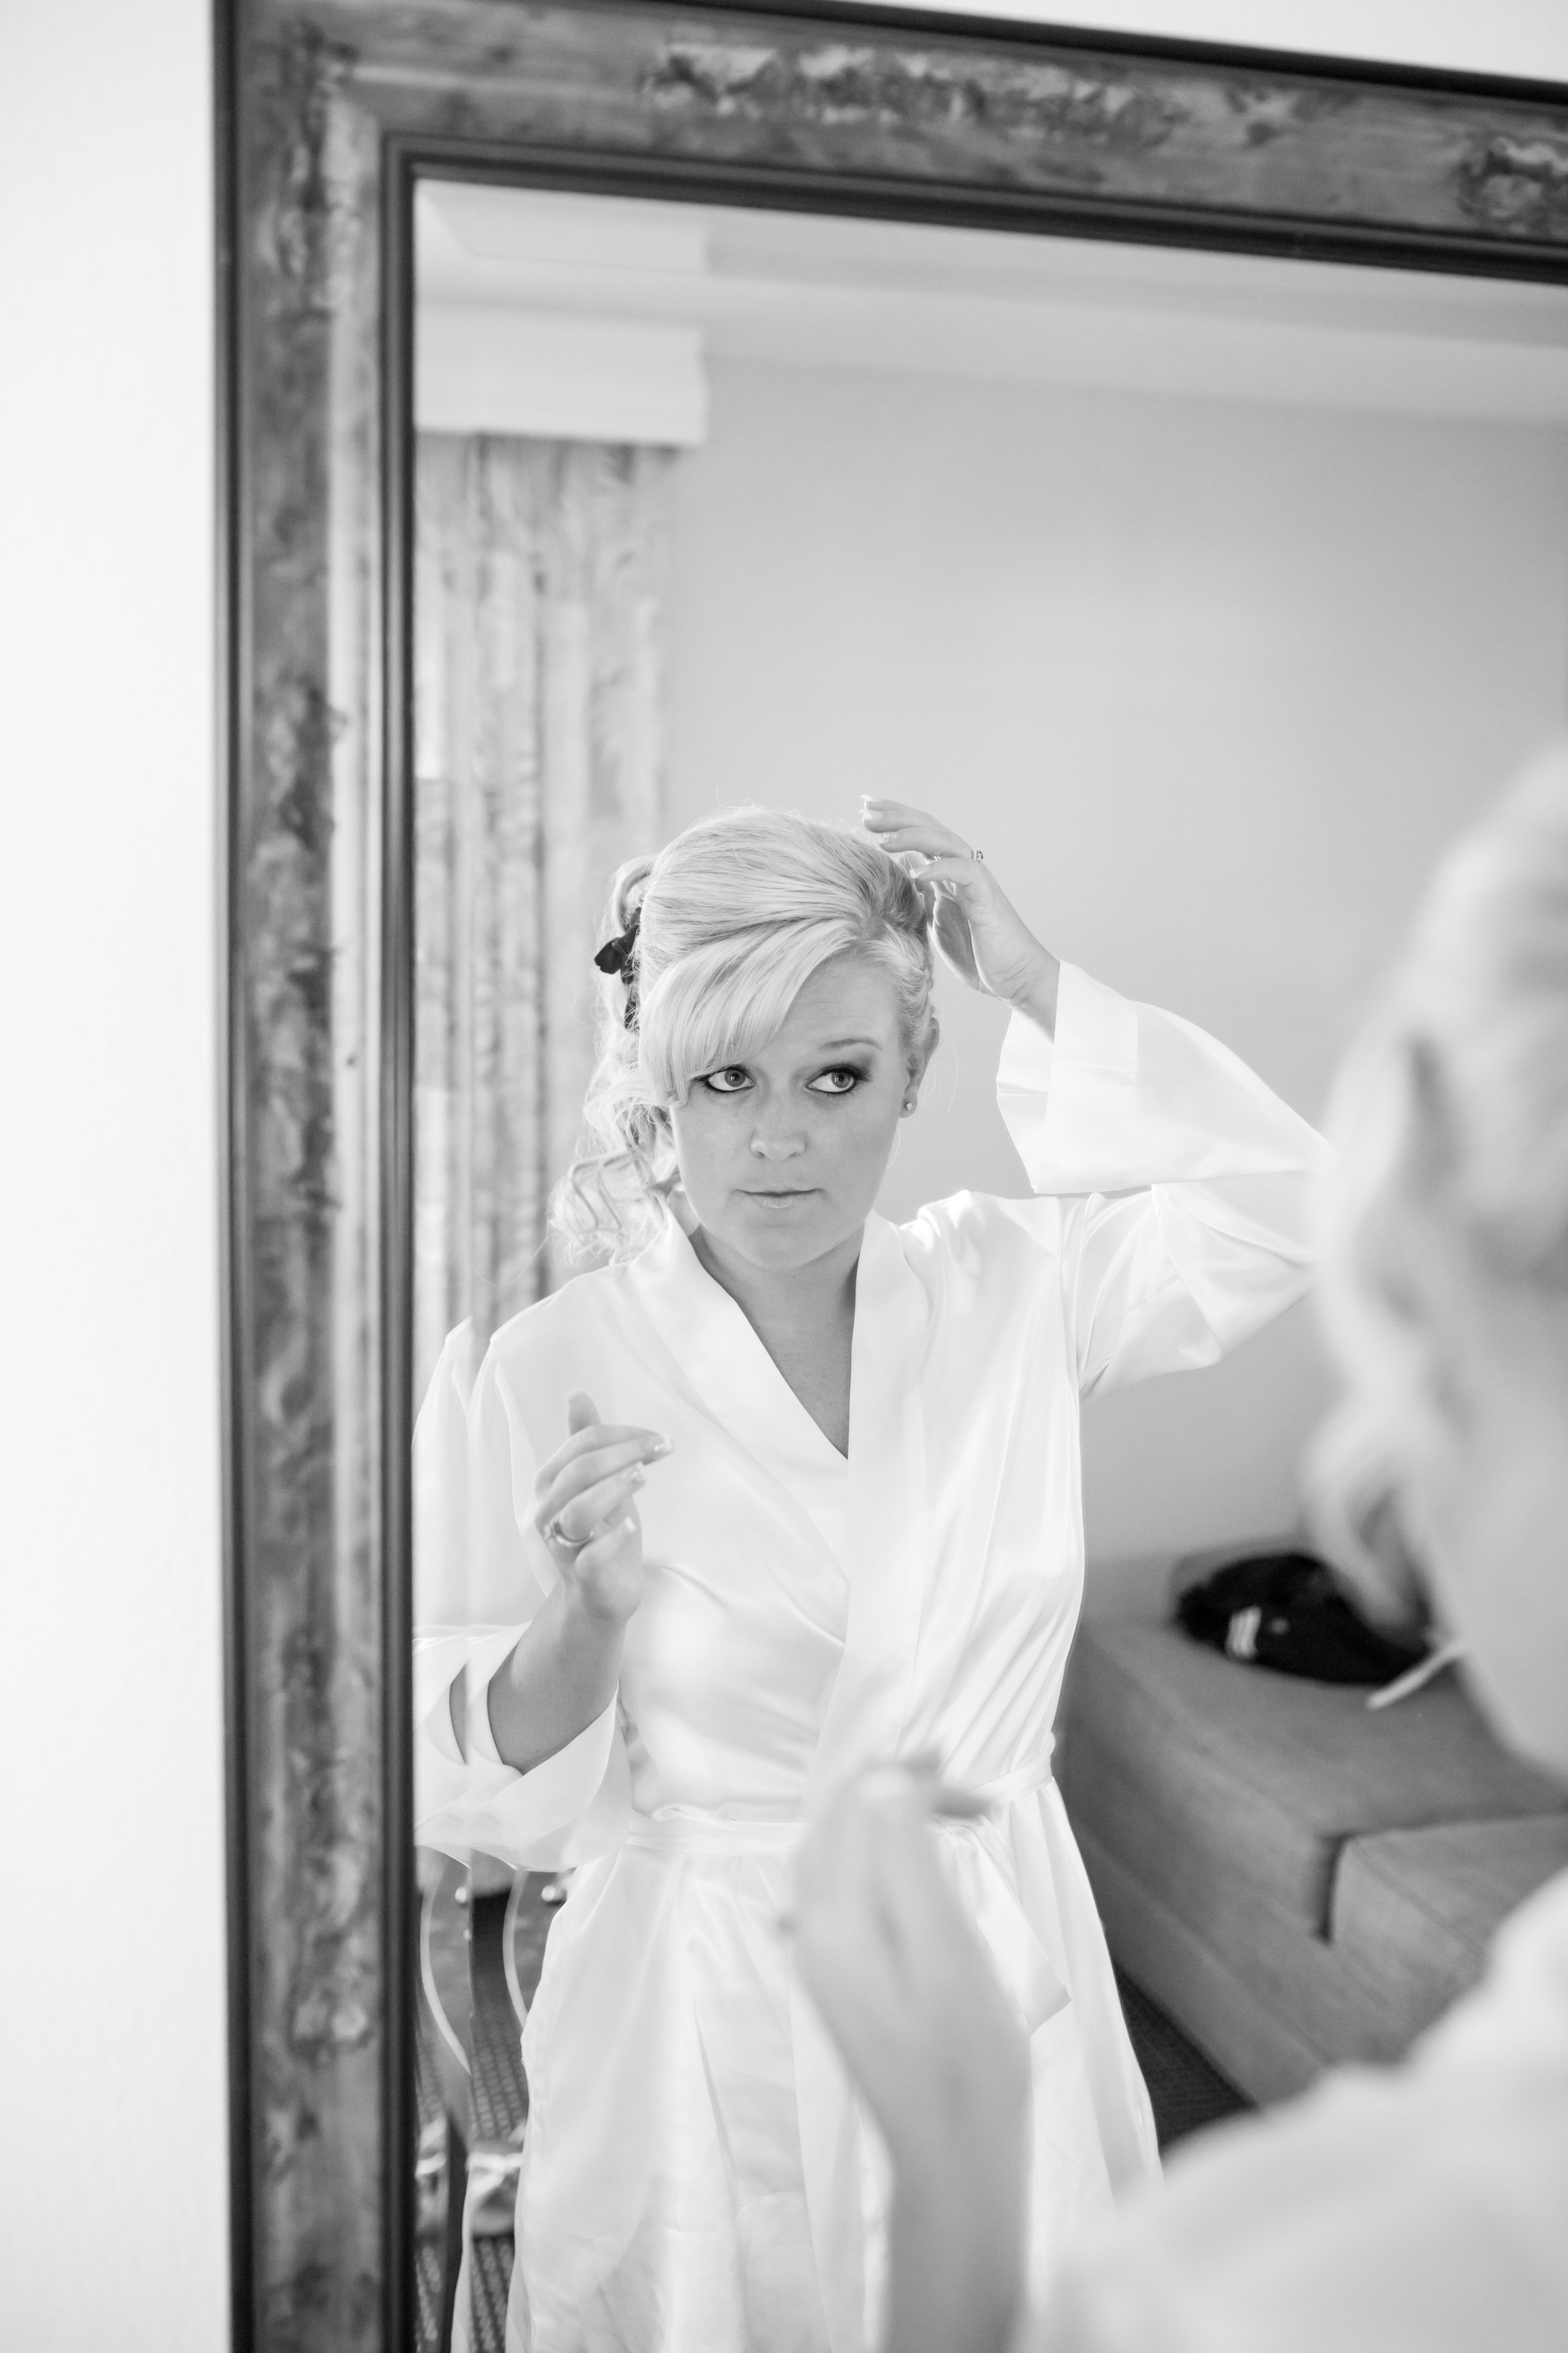 Ashley-Cory-Wedding-Key-West-1-Getting-Ready-First-Look-0021.jpg